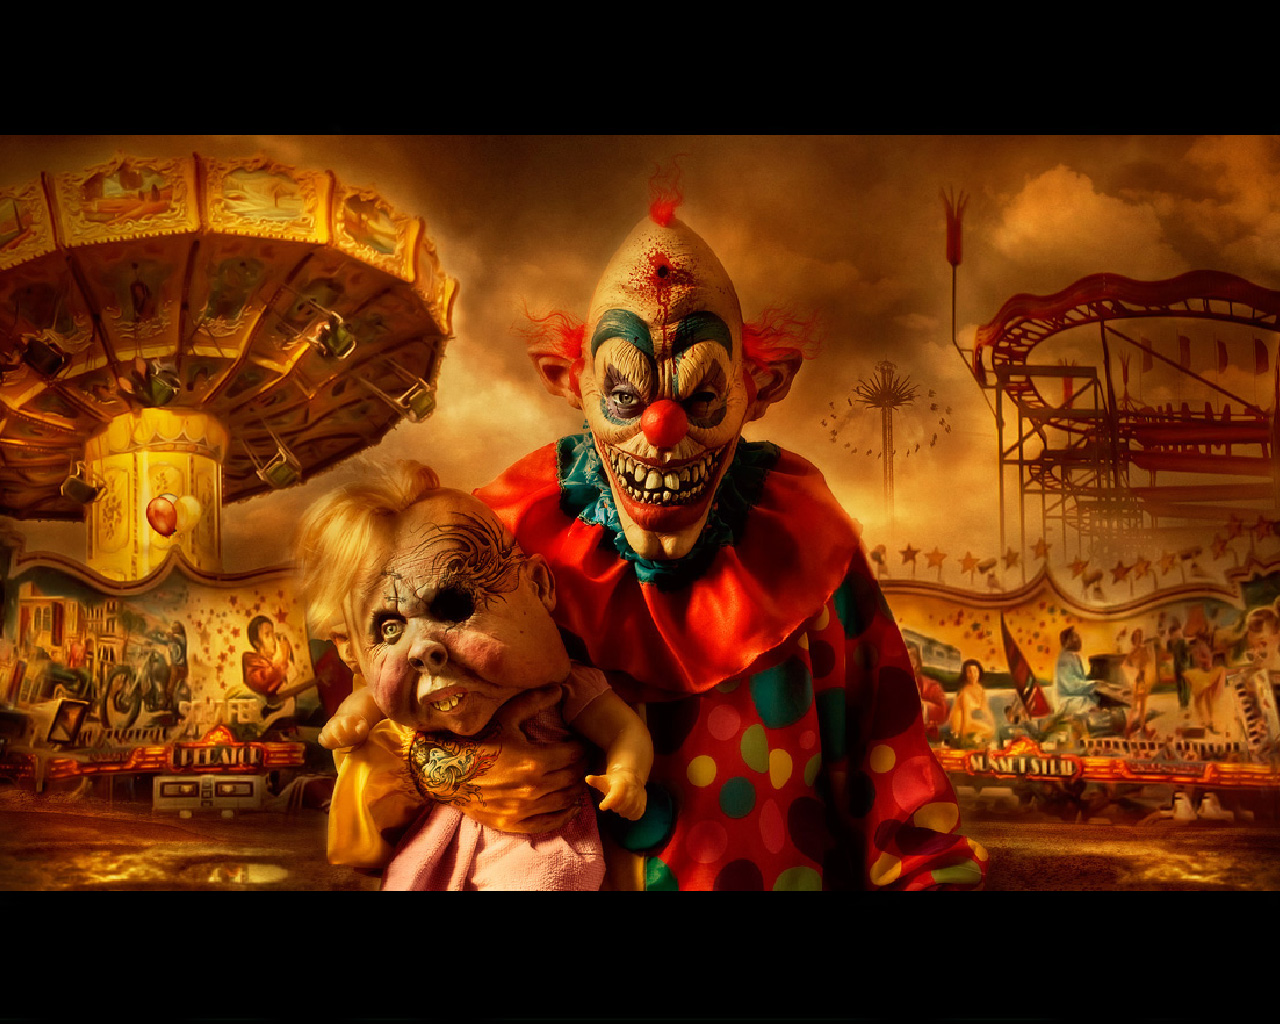 40 Clown Fonds dcran HD Arrire plans 1280x1024